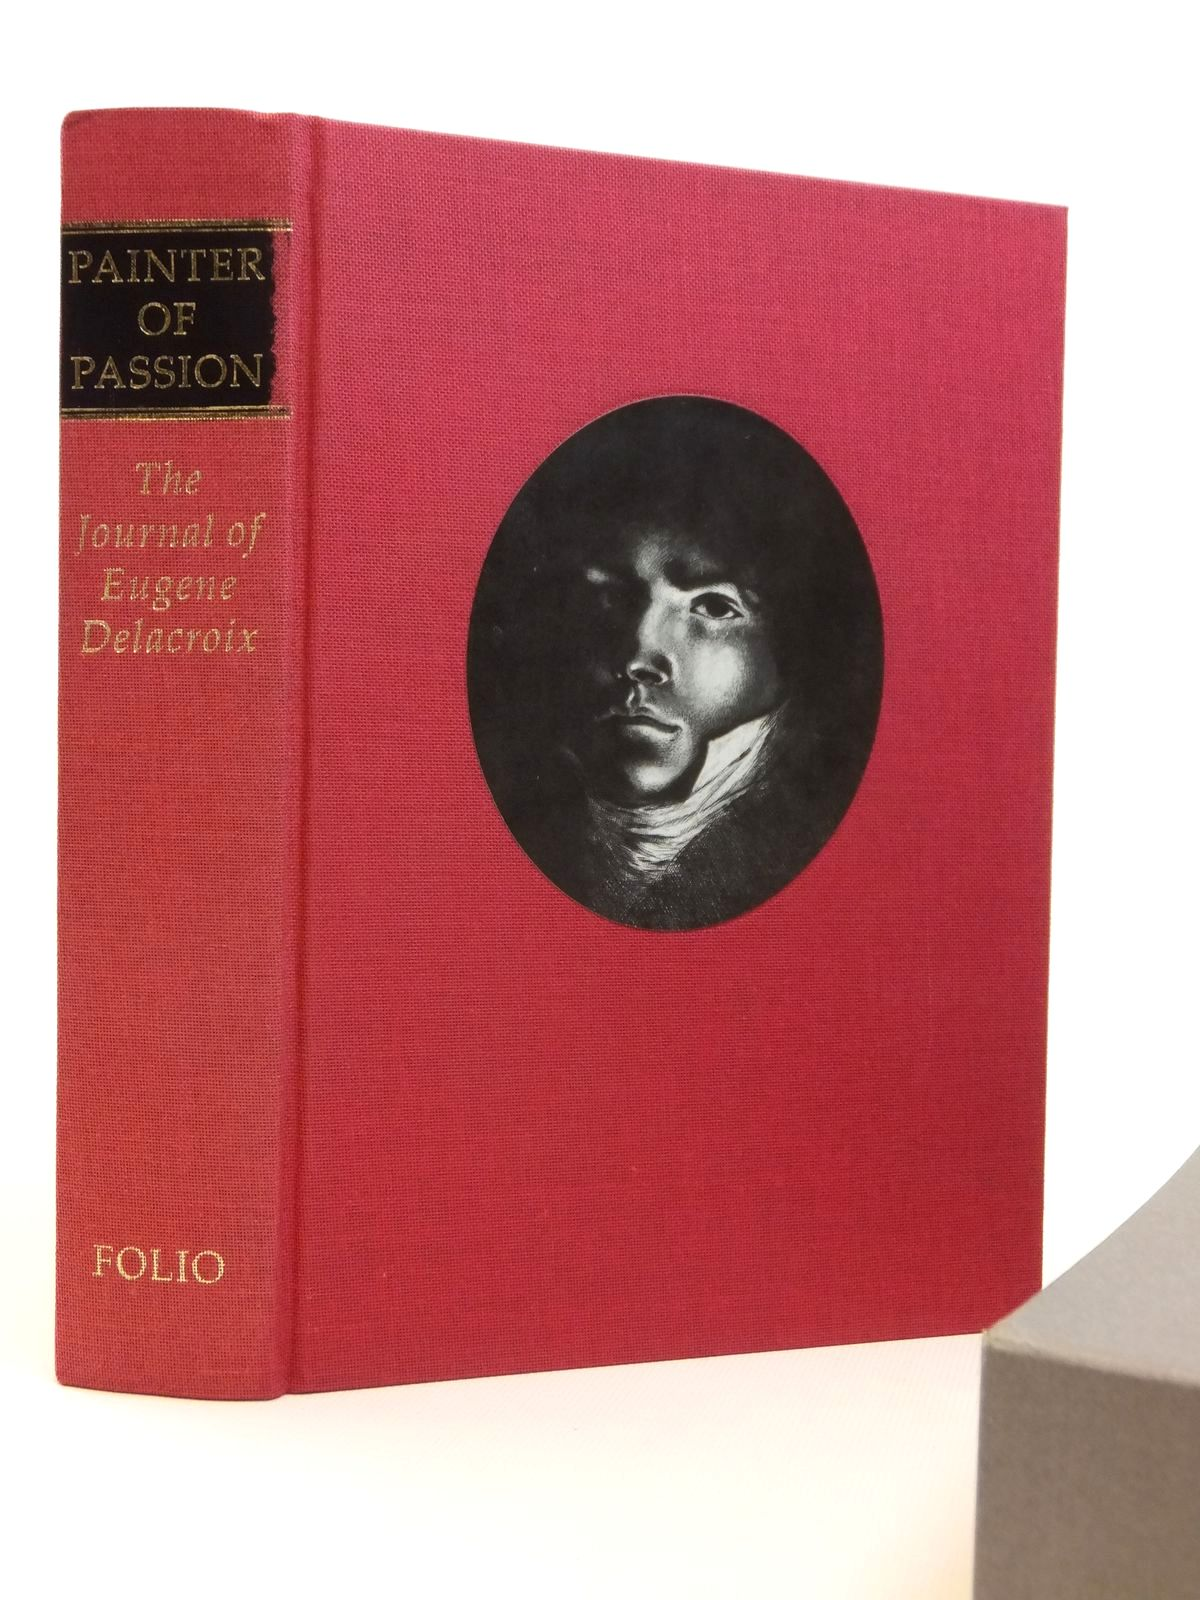 Photo of PAINTER OF PASSION THE JOURNAL OF EUGENE DELACROIX written by Delacroix, Eugene<br />Wellington, Hubert published by Folio Society (STOCK CODE: 2121922)  for sale by Stella & Rose's Books